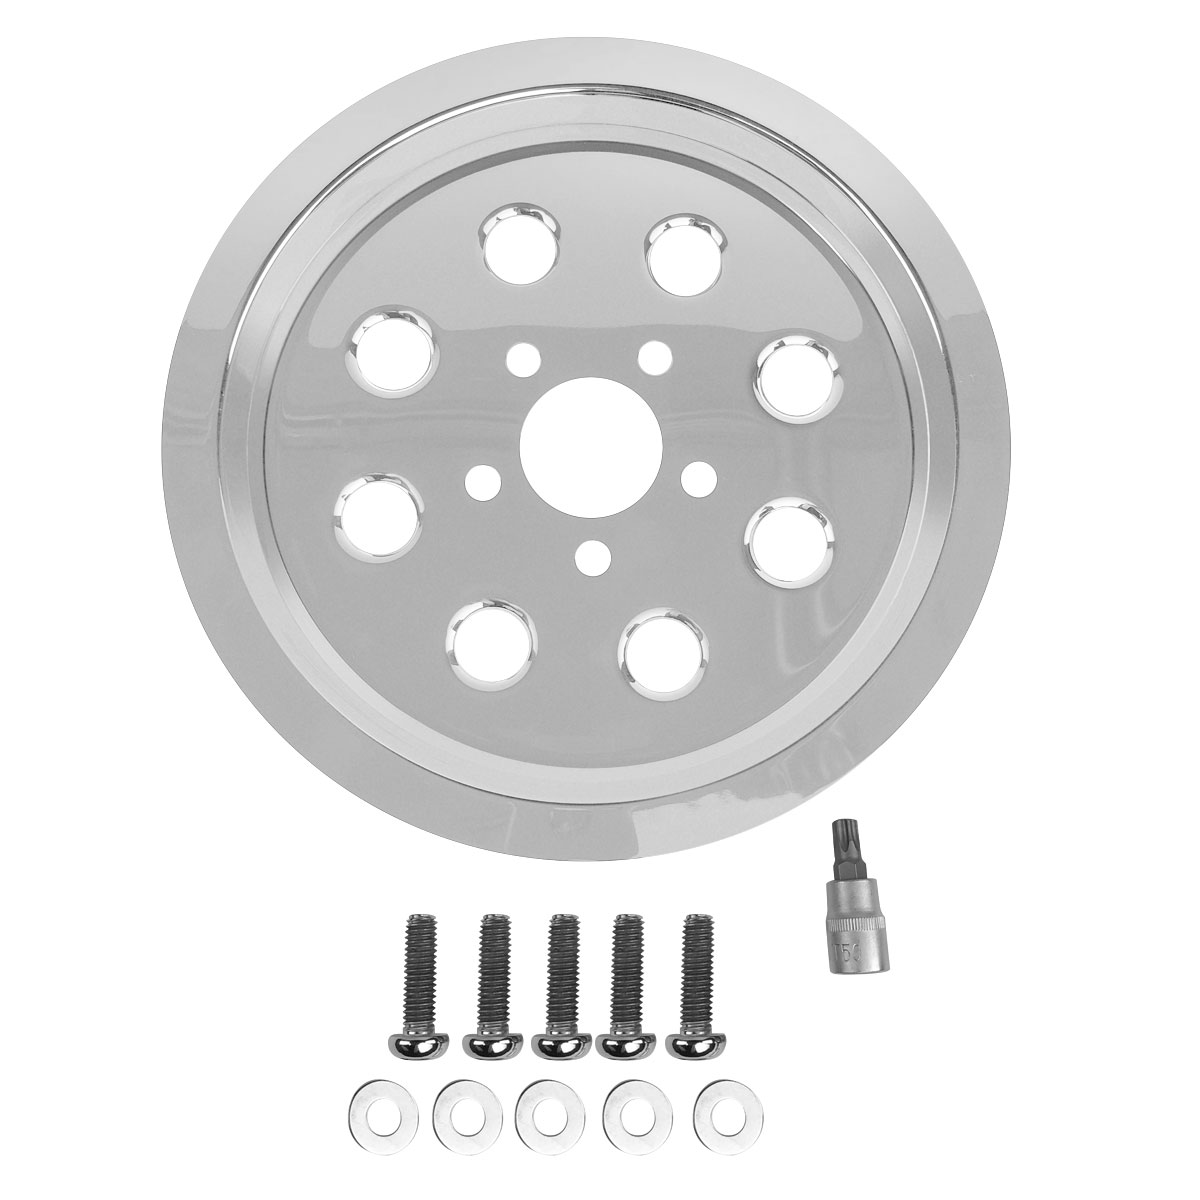 J&P Cycles® Chrome Belt Drive Pulley Insert Kit